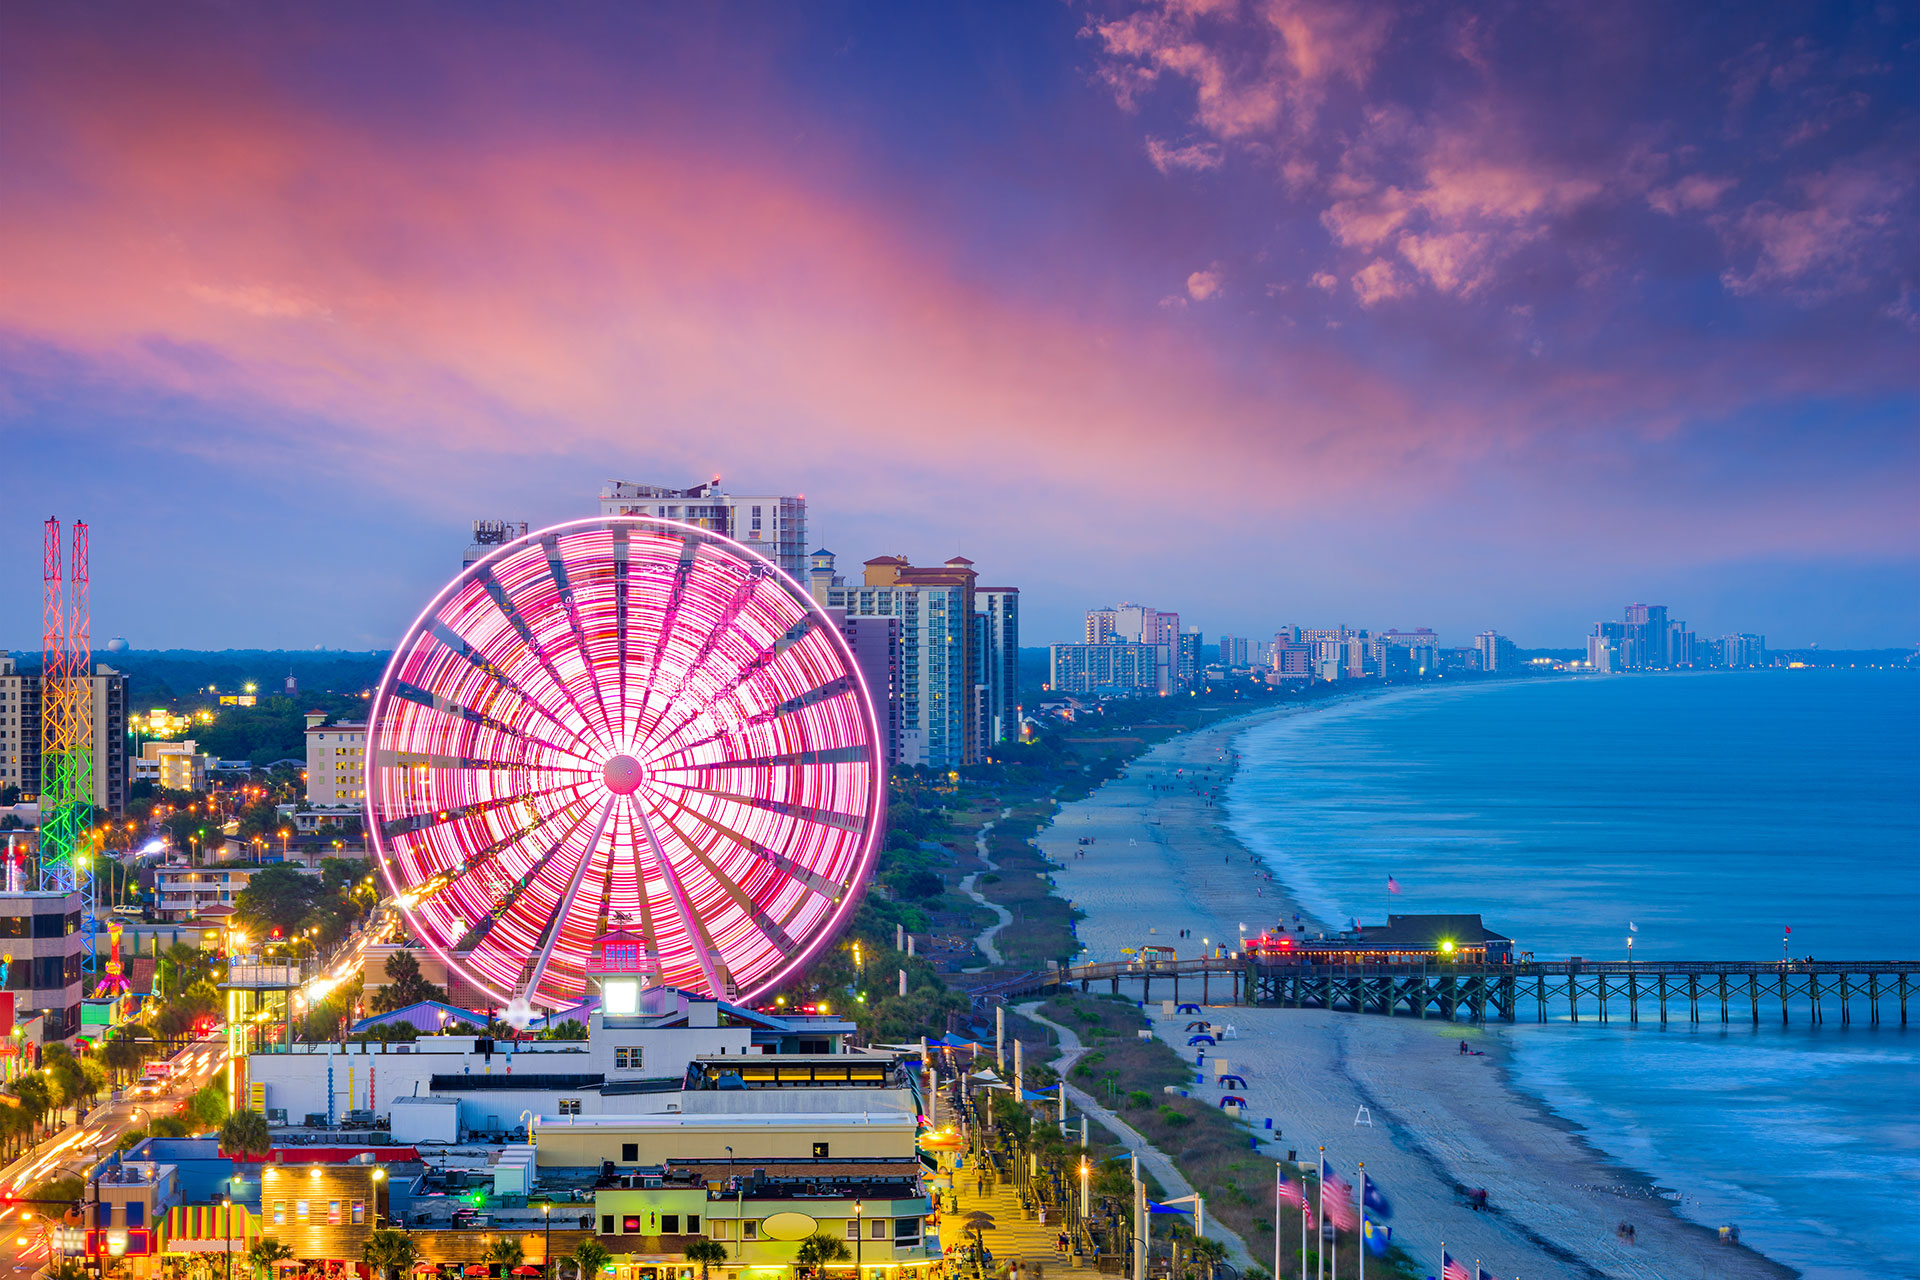 Myrtle Beach, SC at Night